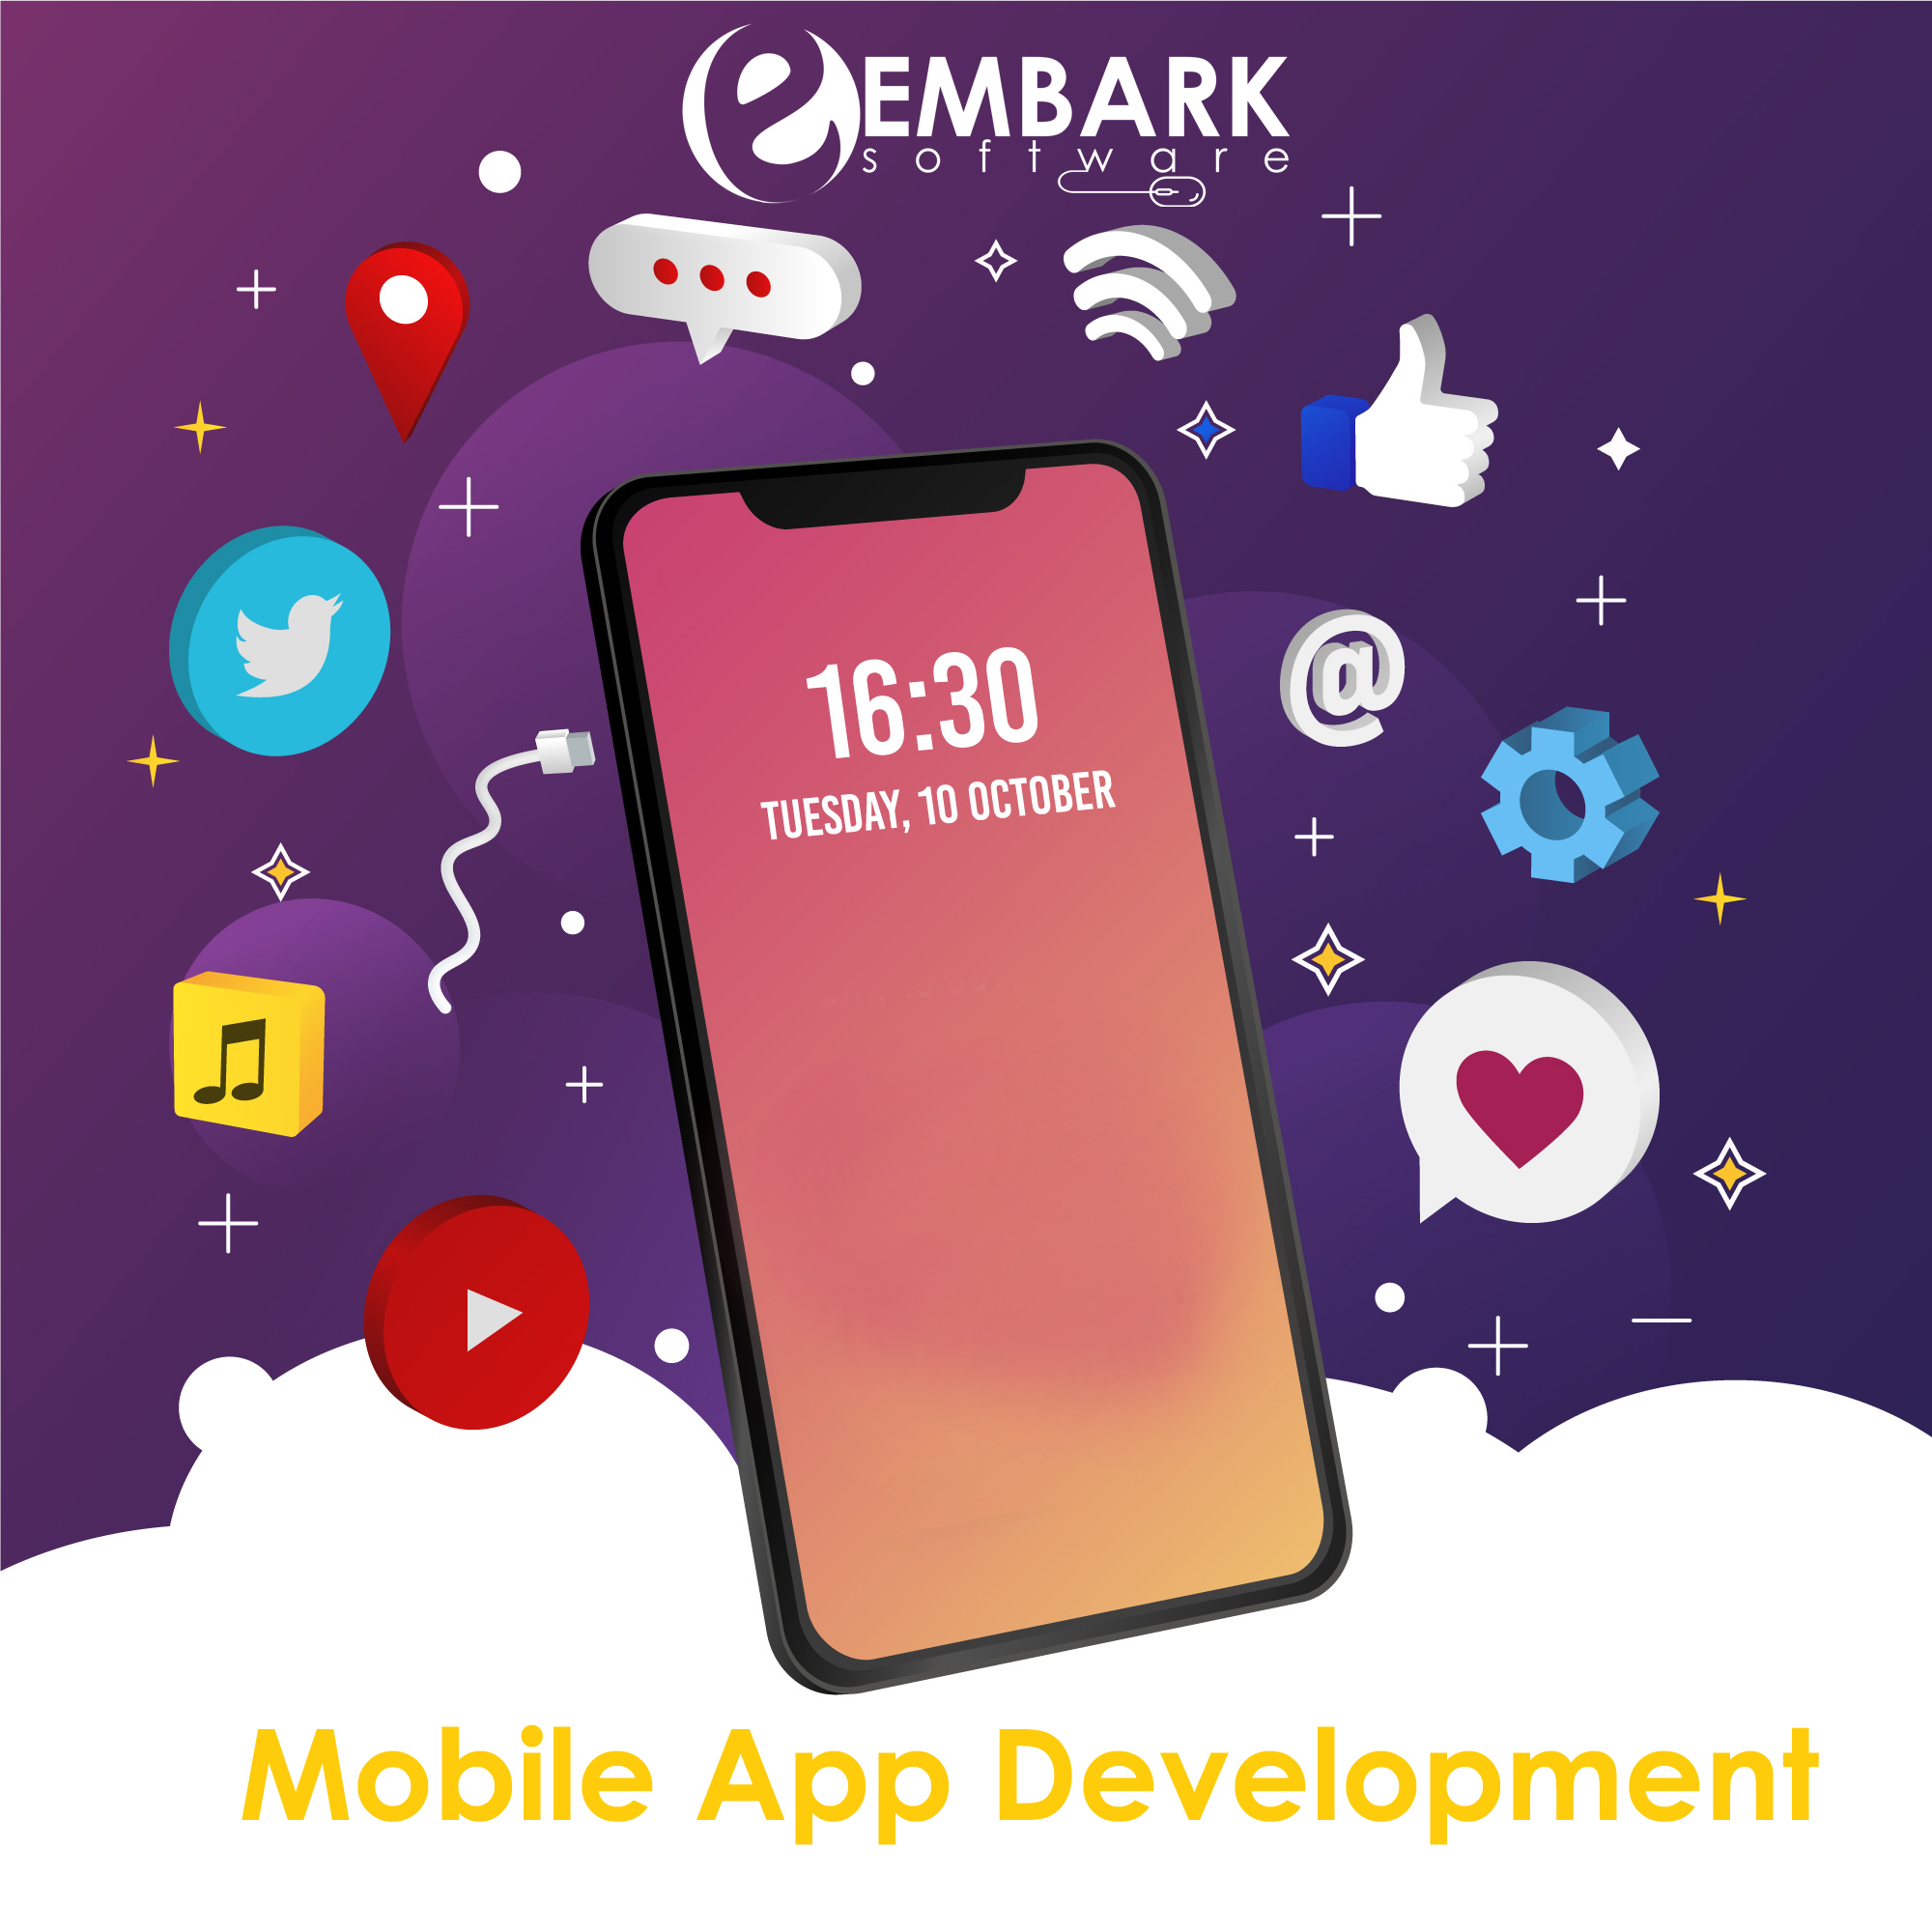 Developing Right Strategies for Mobile App Development